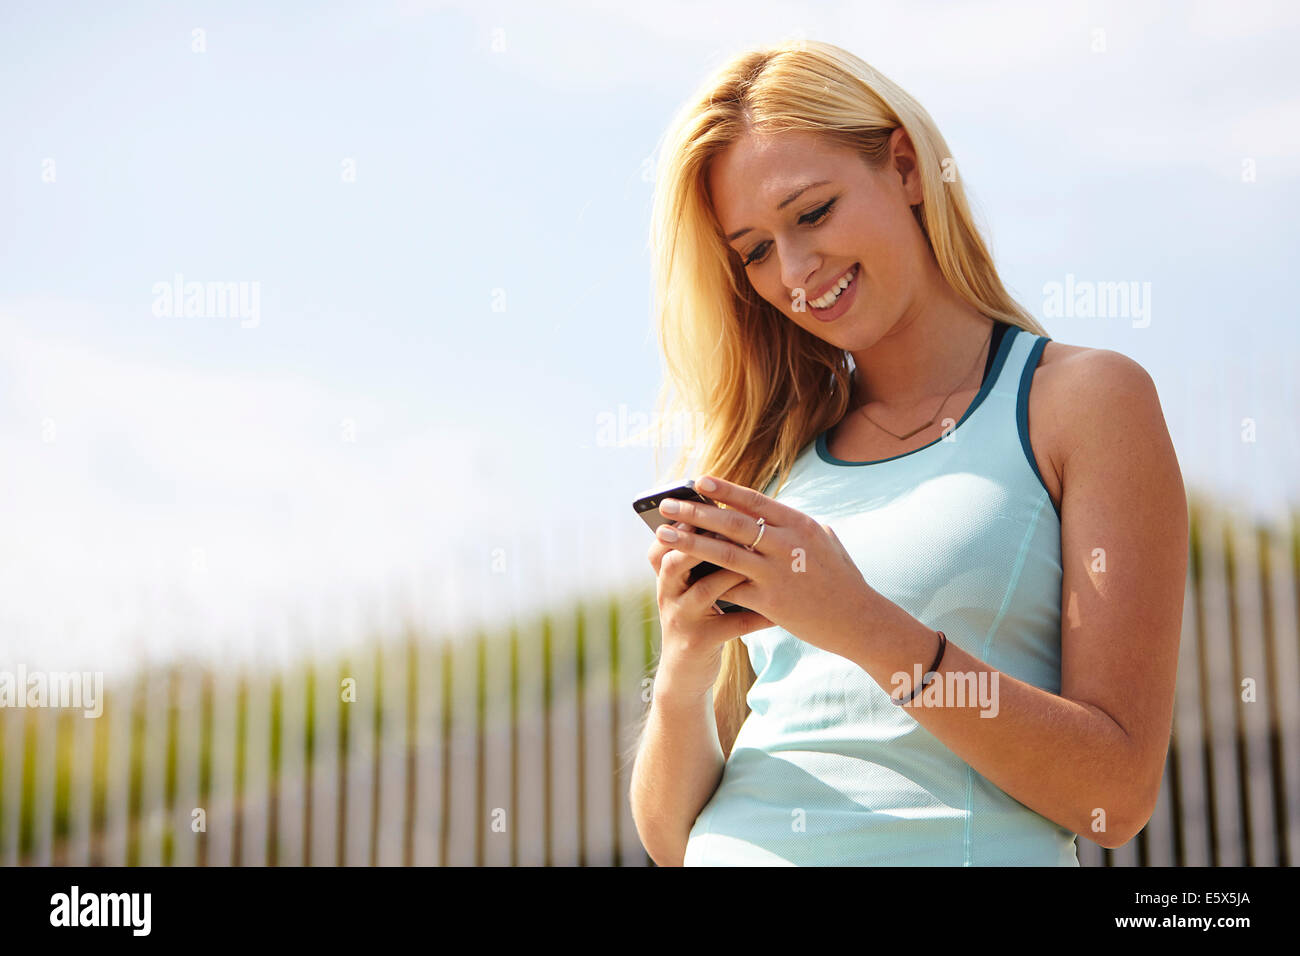 Woman using smartphone Photo Stock